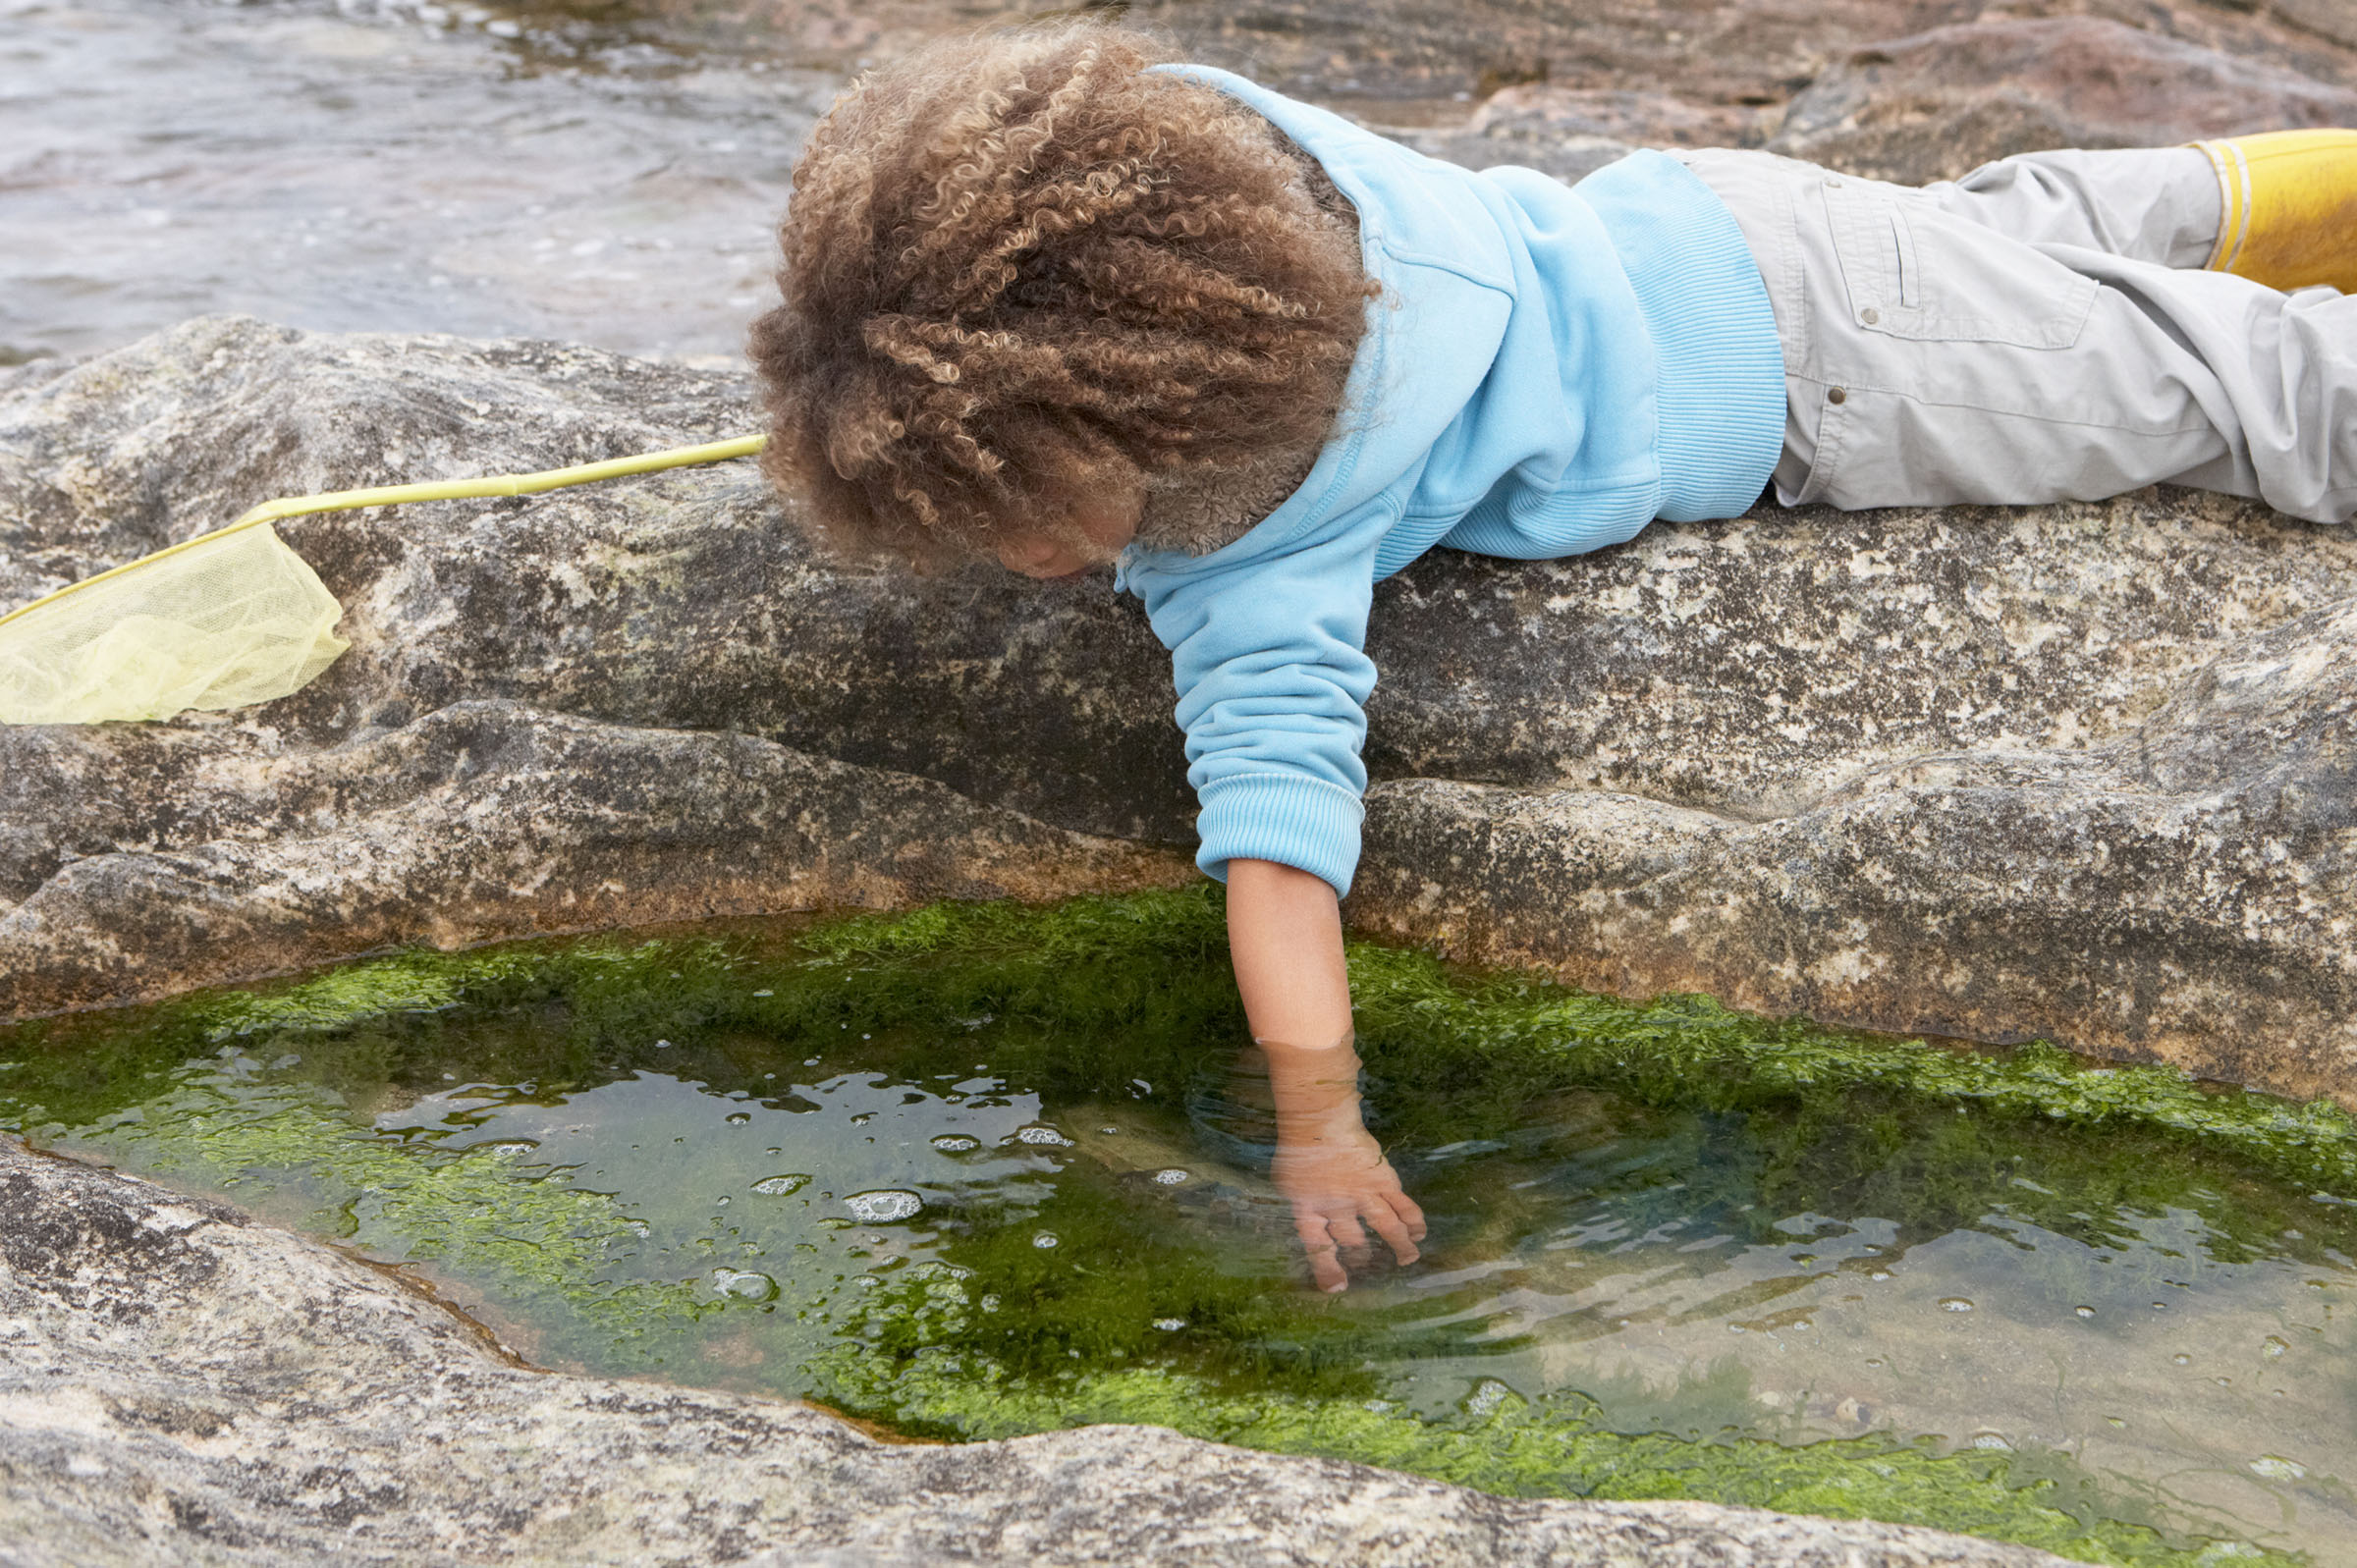 How many different creatures live in a rock pool?